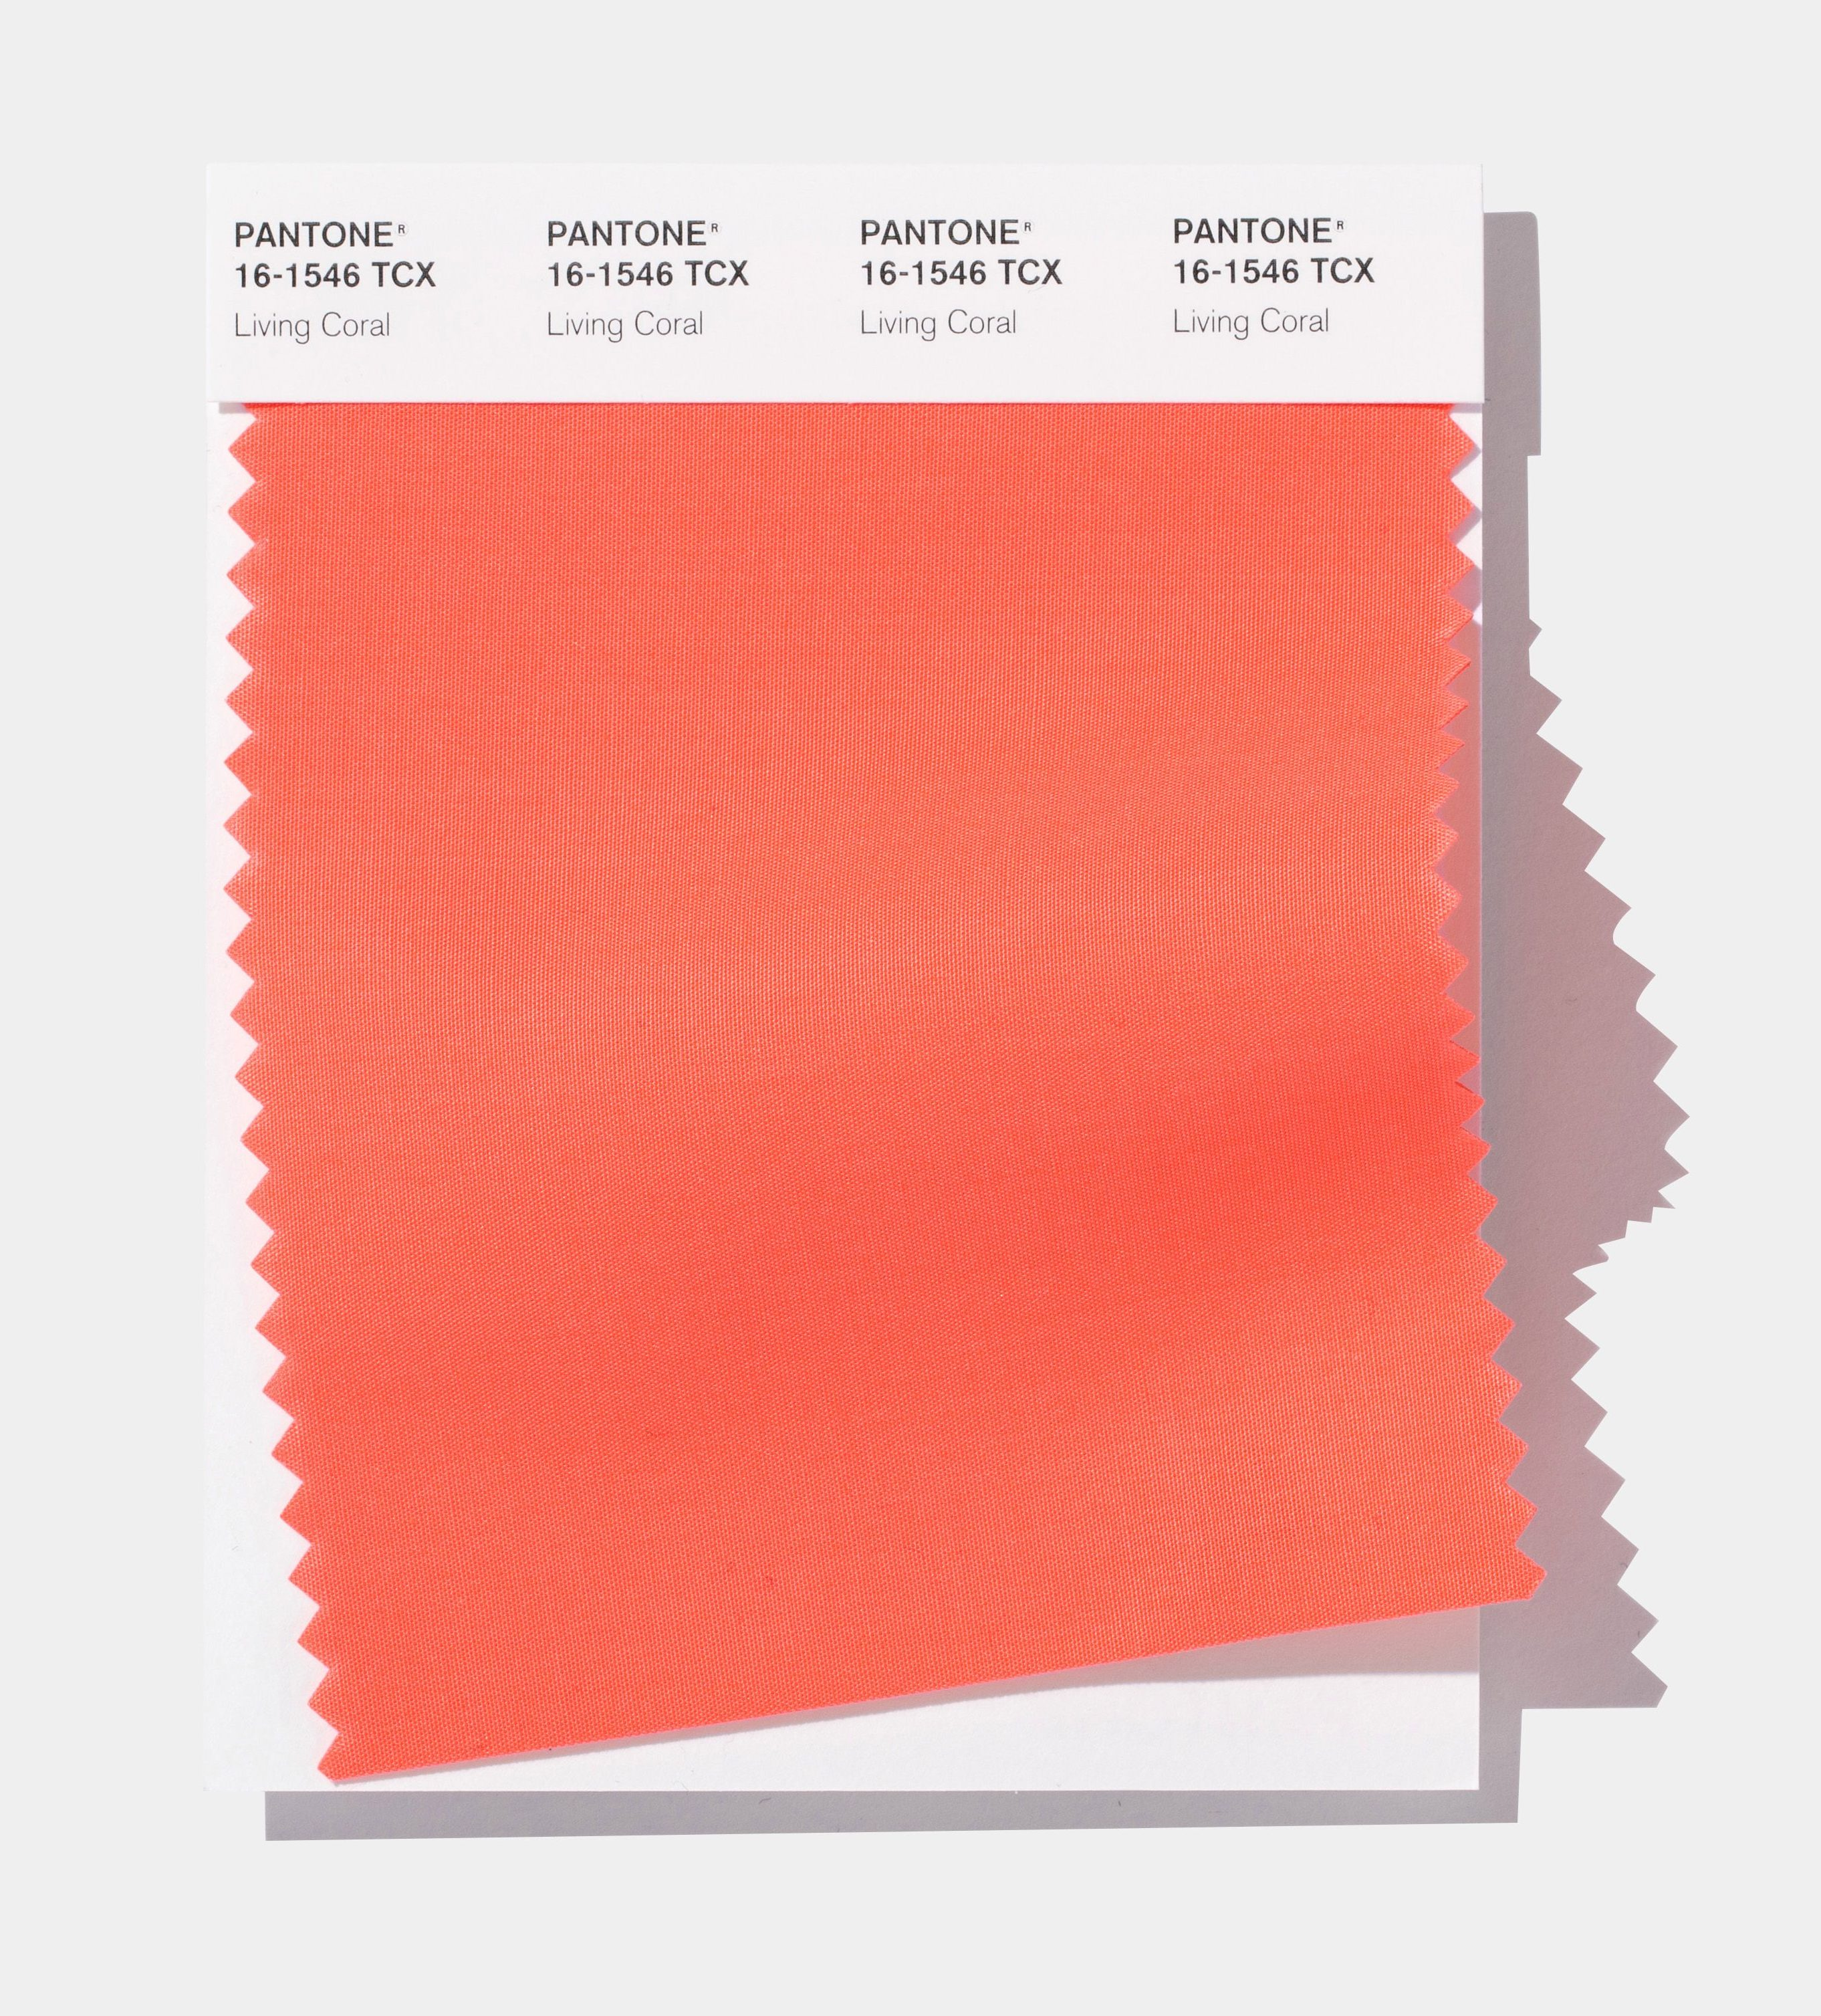 The 2019 Pantone Color Of The Year Is Living Coral Quartz,How To Clean A Kitchen Sink Drain That Smells